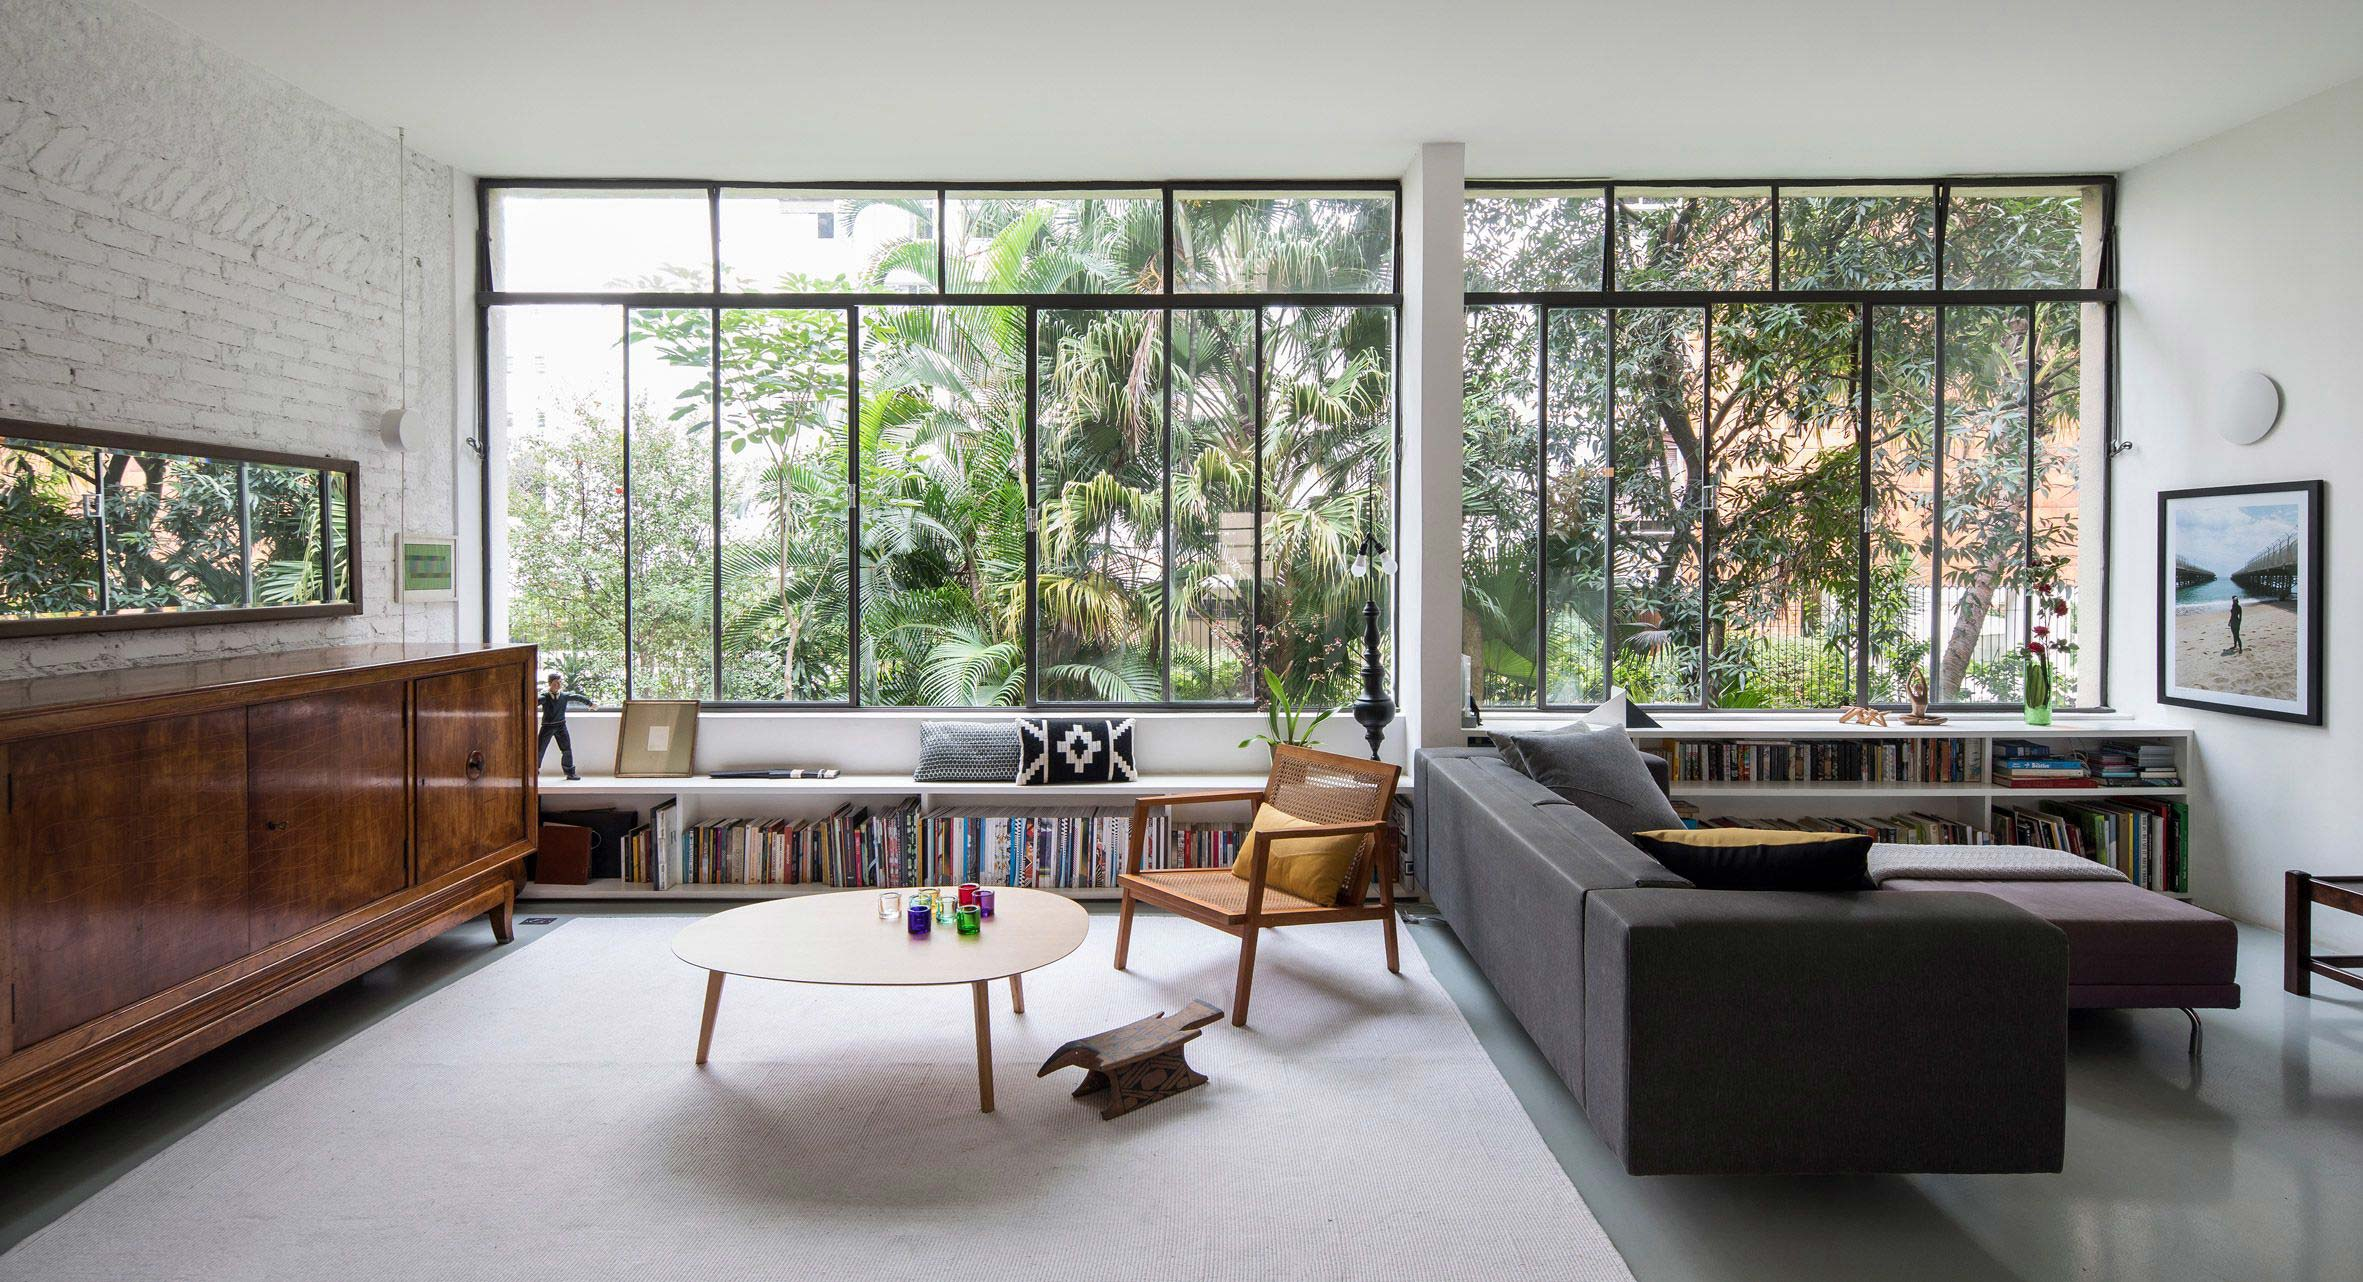 Take A Look Inside This Meticulous 1950s Sao Paulo Apartment Renovation